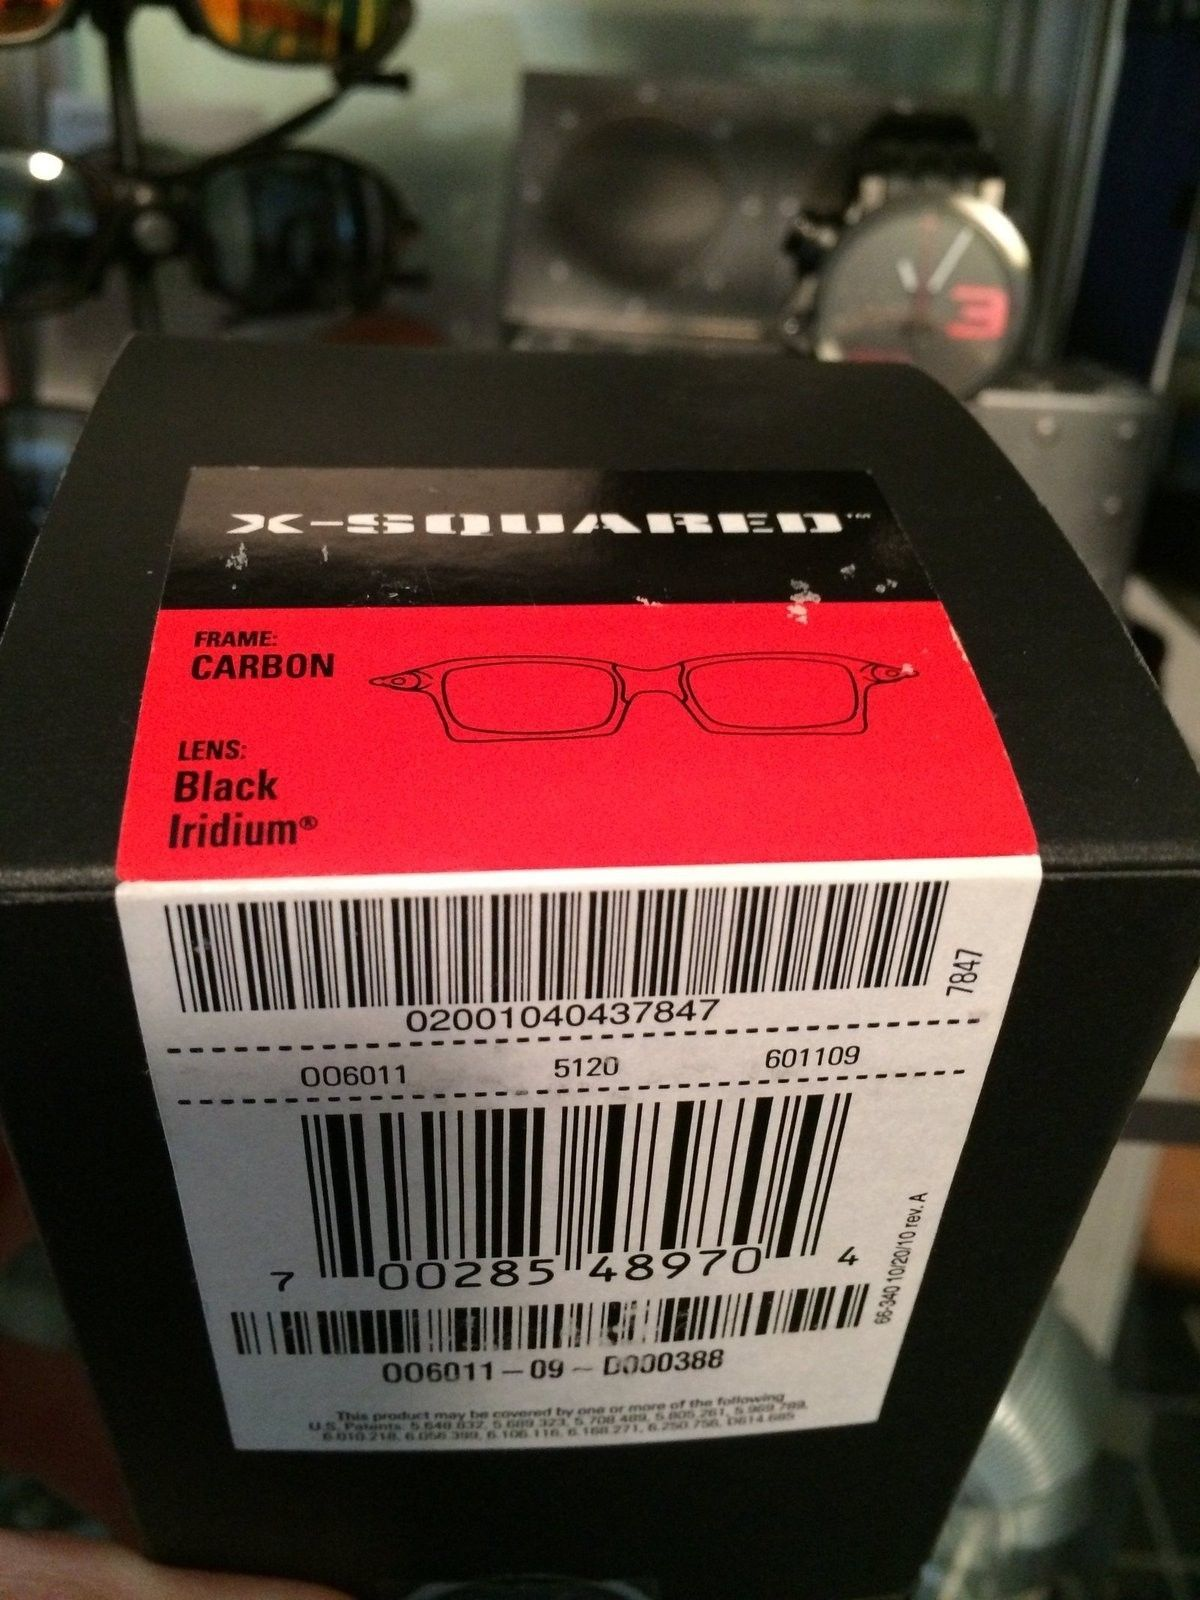 Bought Ducati X-squared BNIB...question regarding package label and of course authenticity... - image.jpg